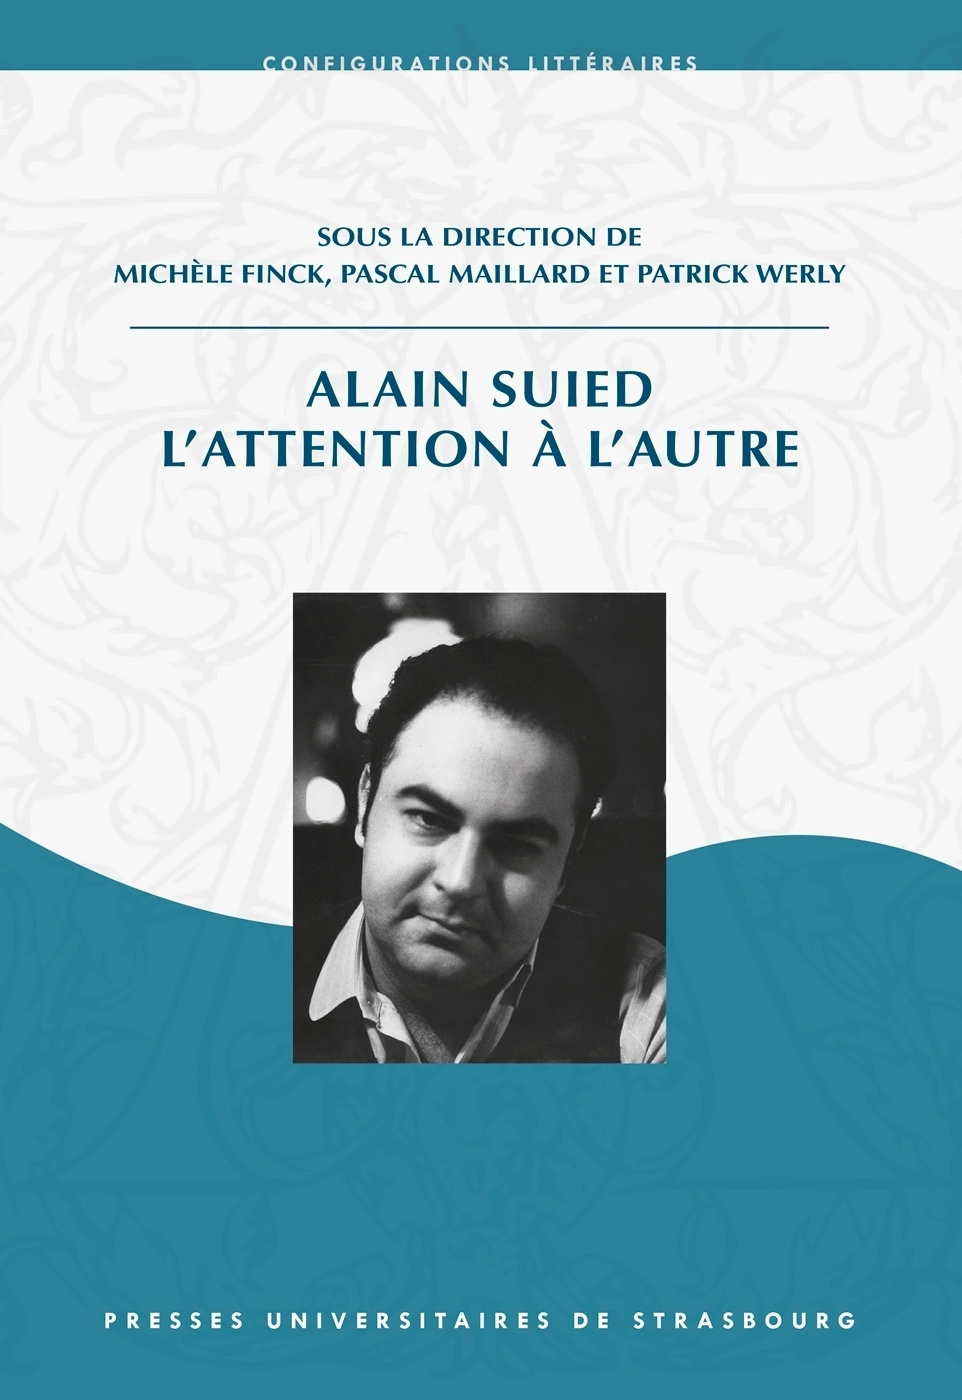 ALAIN SUIED - L'ATTENTION A L'AUTRE